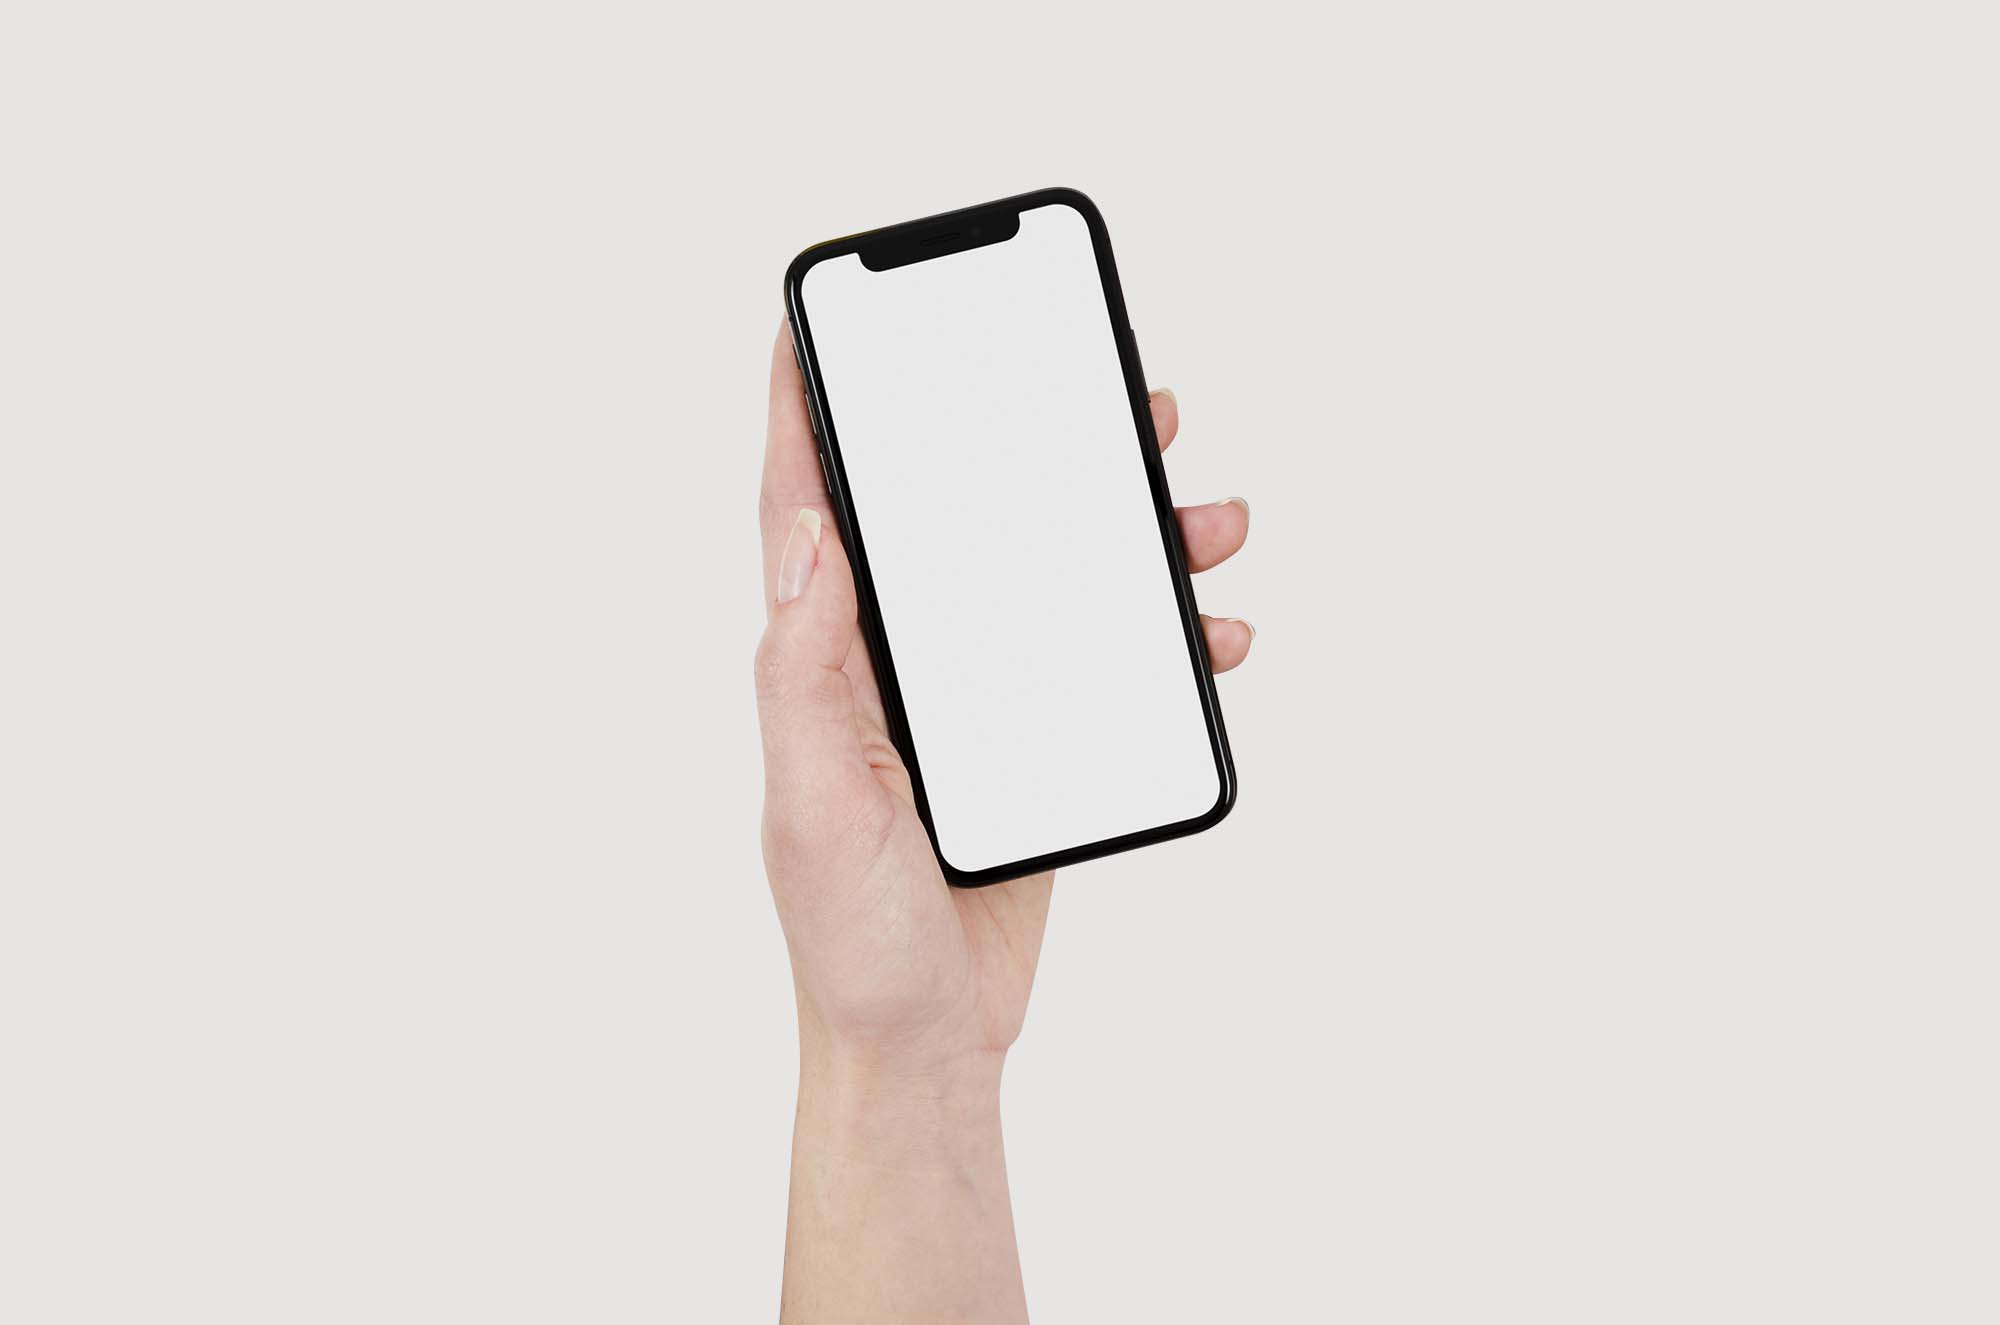 iPhone X Mockup in Hand 2